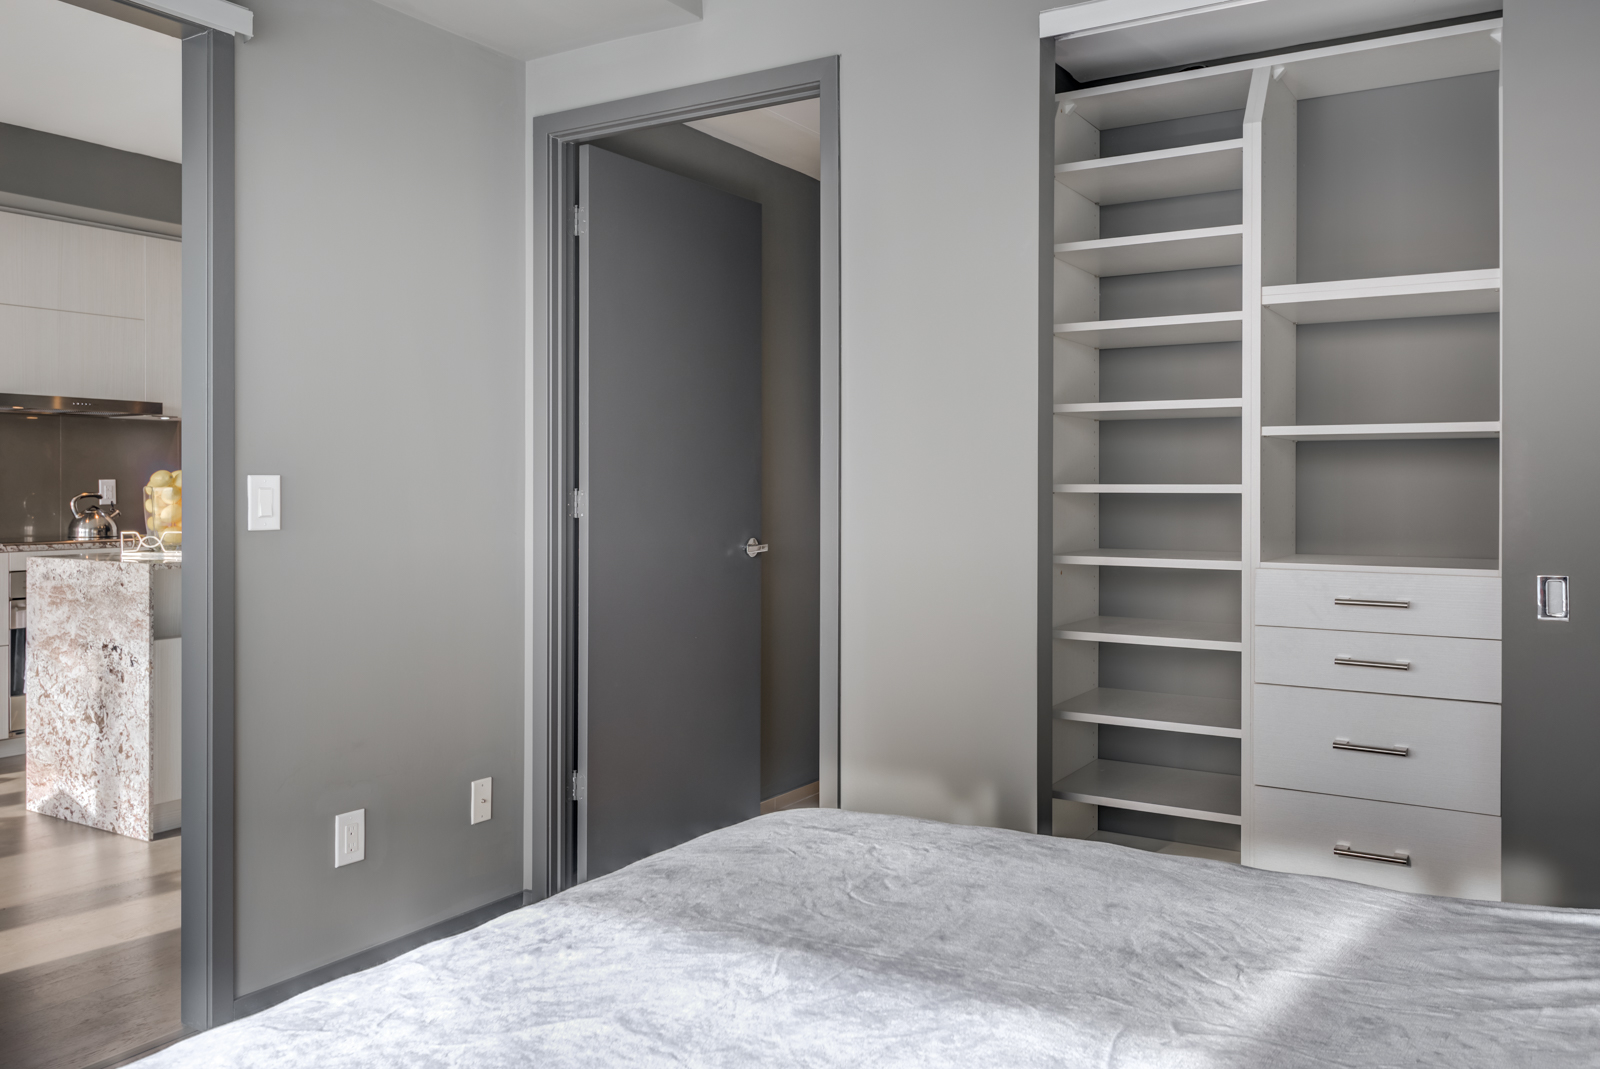 Open closet doors with empty shelves and drawers in bedroom of Unit 4305.